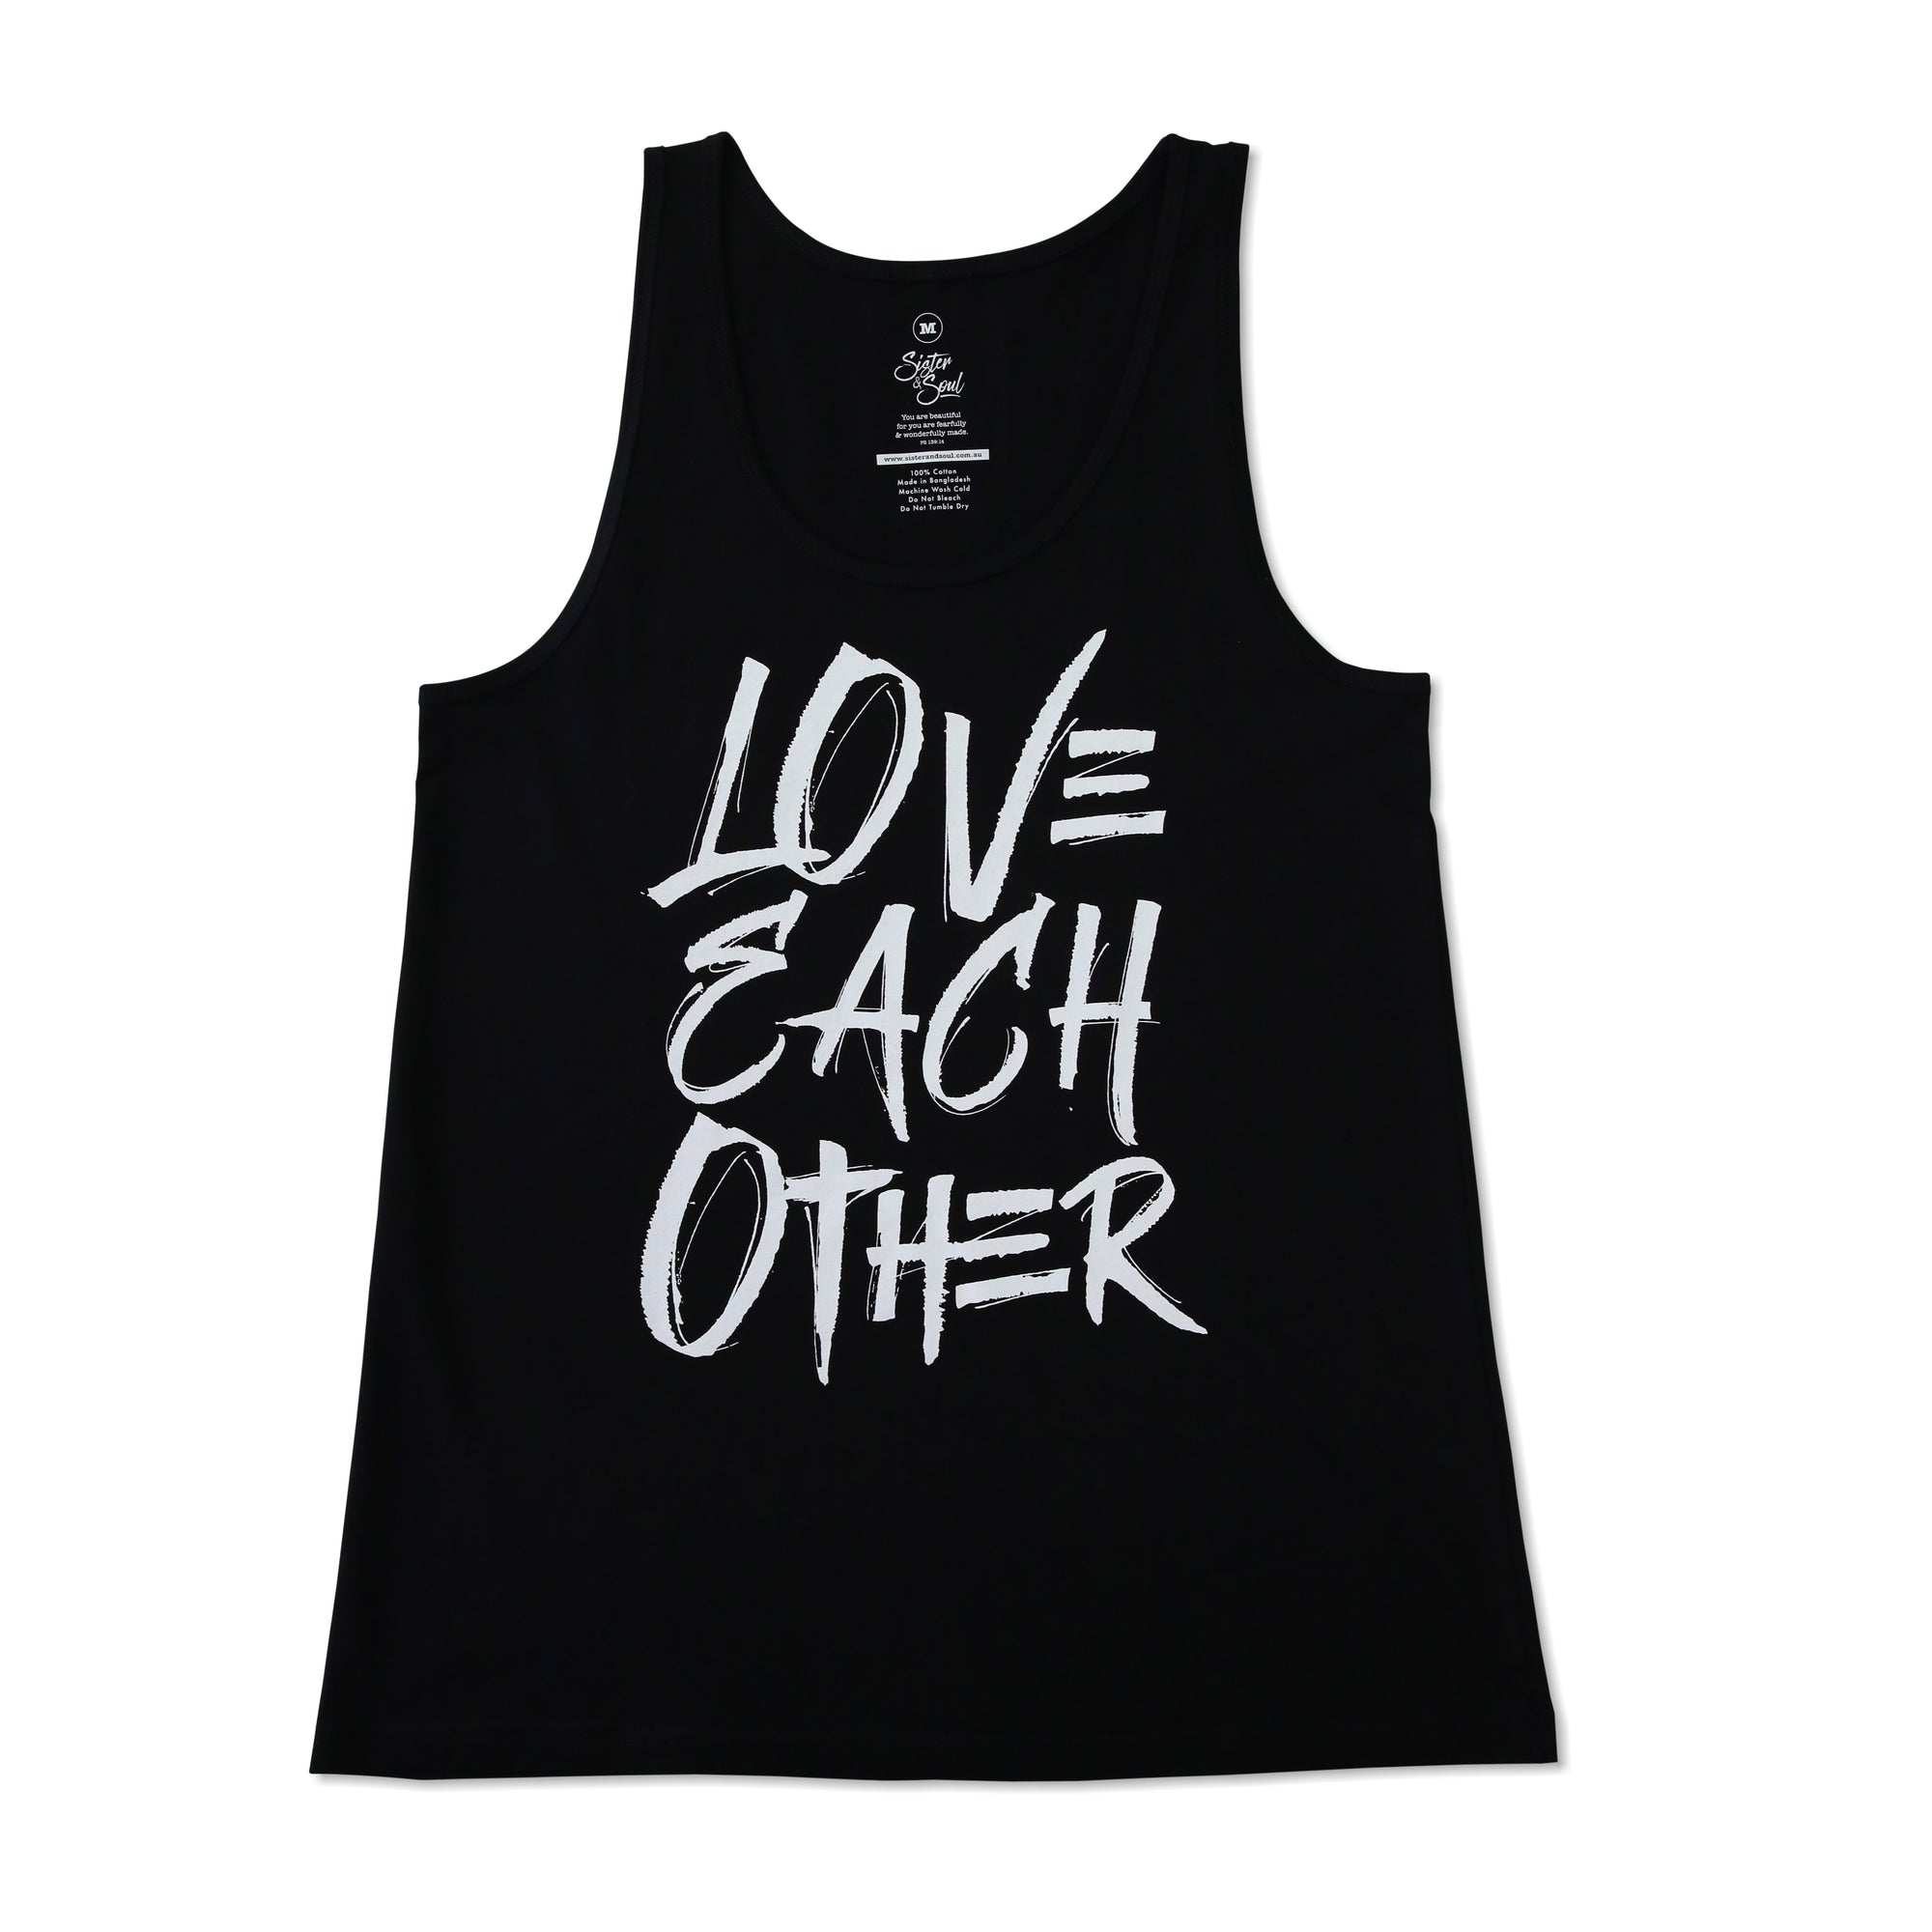 LOVE EACH OTHER Tank - Black